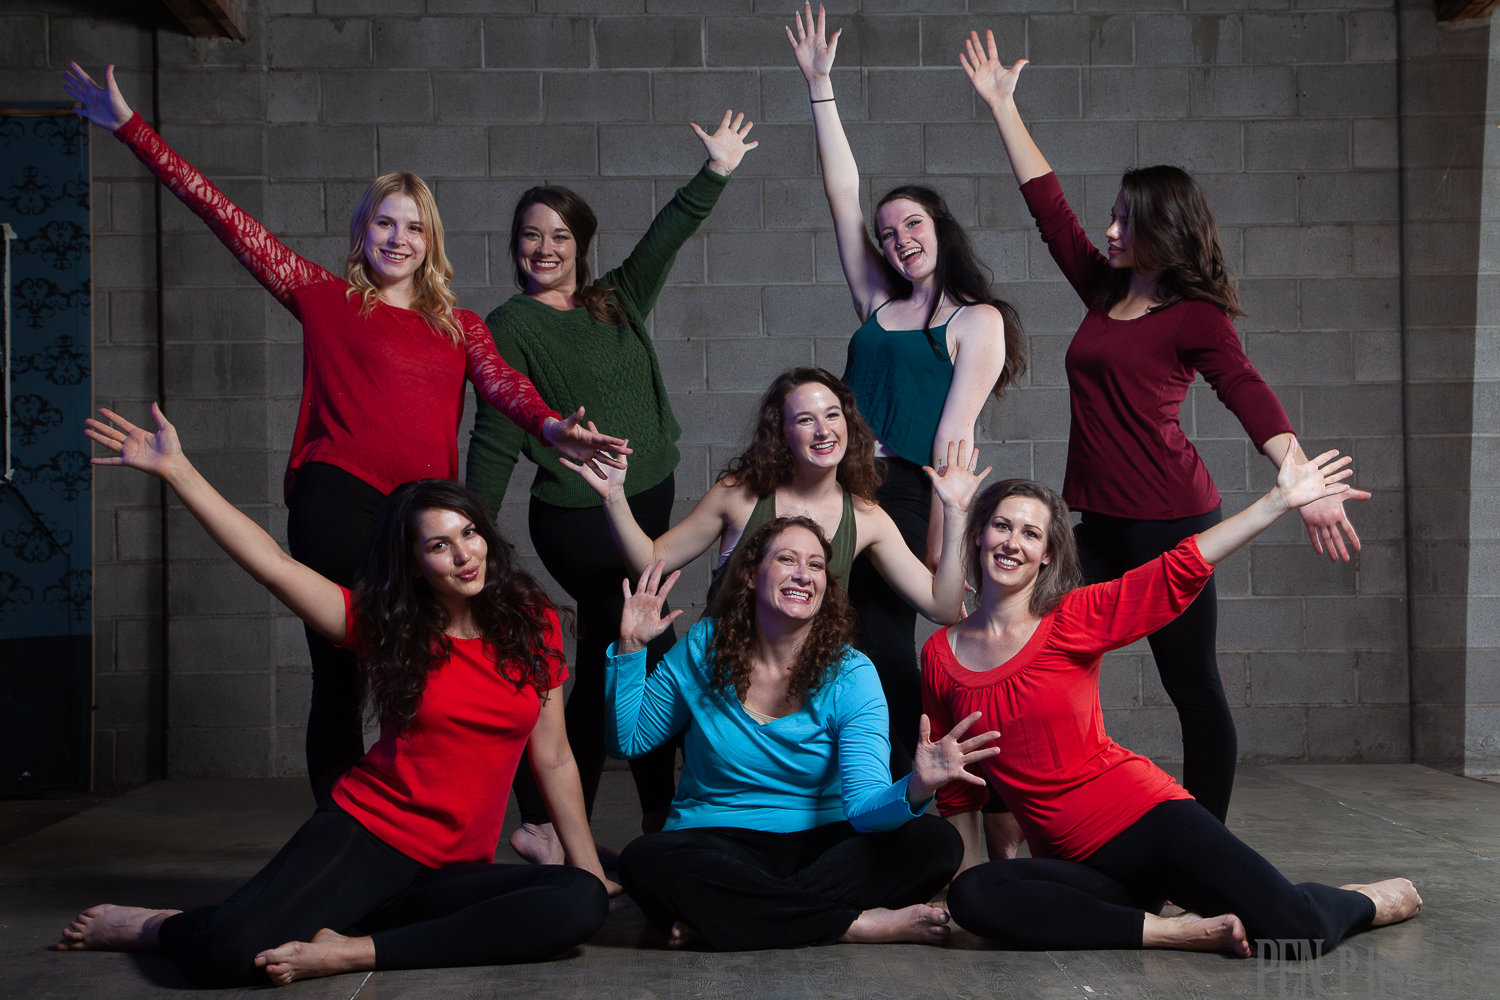 Dance Eclectic will perform during the Festival of Trees